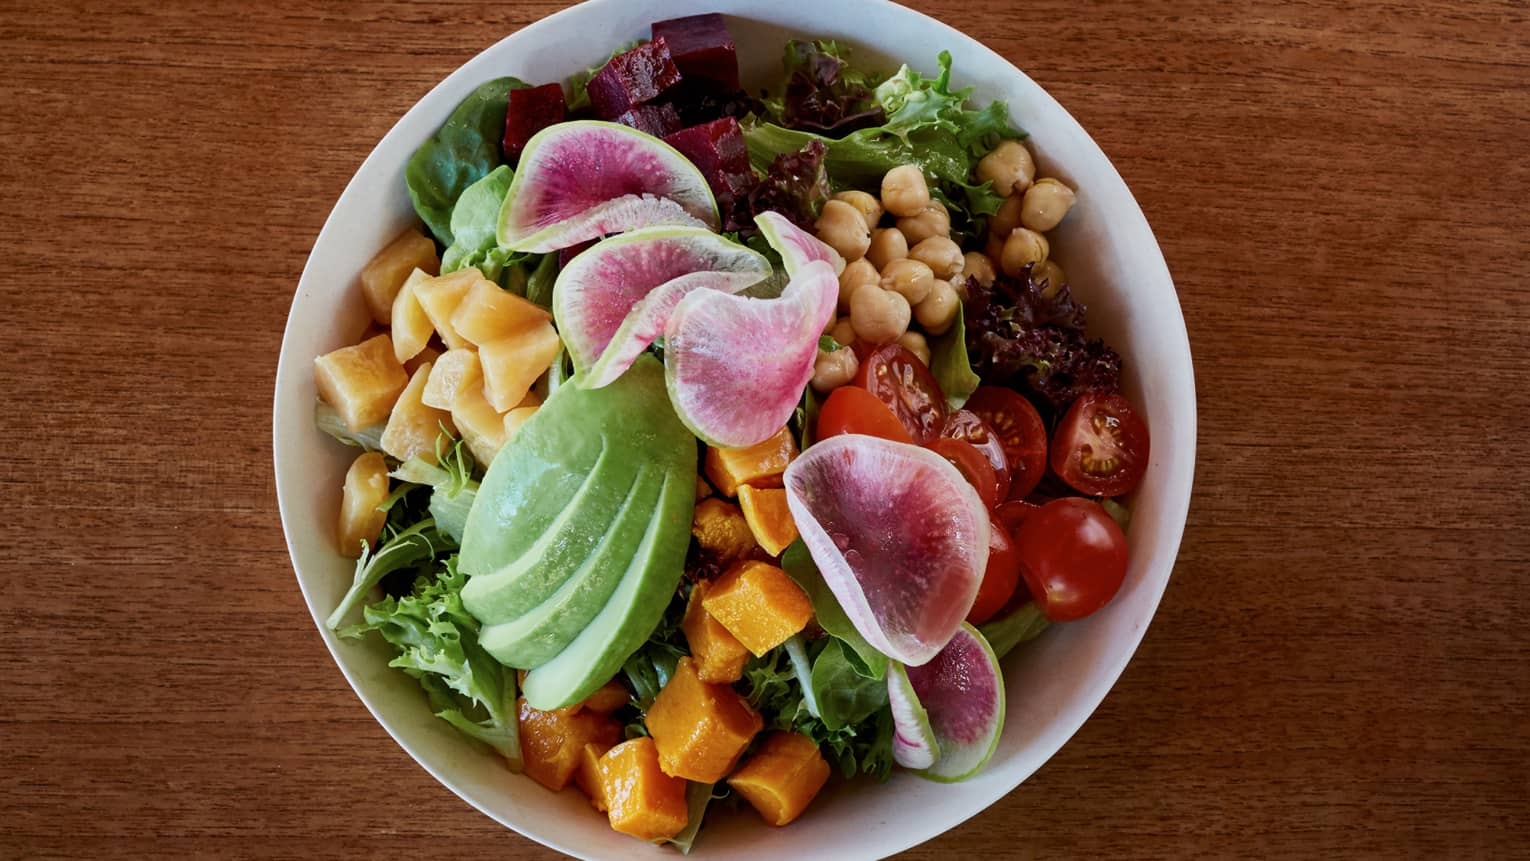 Aerial view of bowl with fresh chopped greens, vegetables, avocado slices, chickpeas